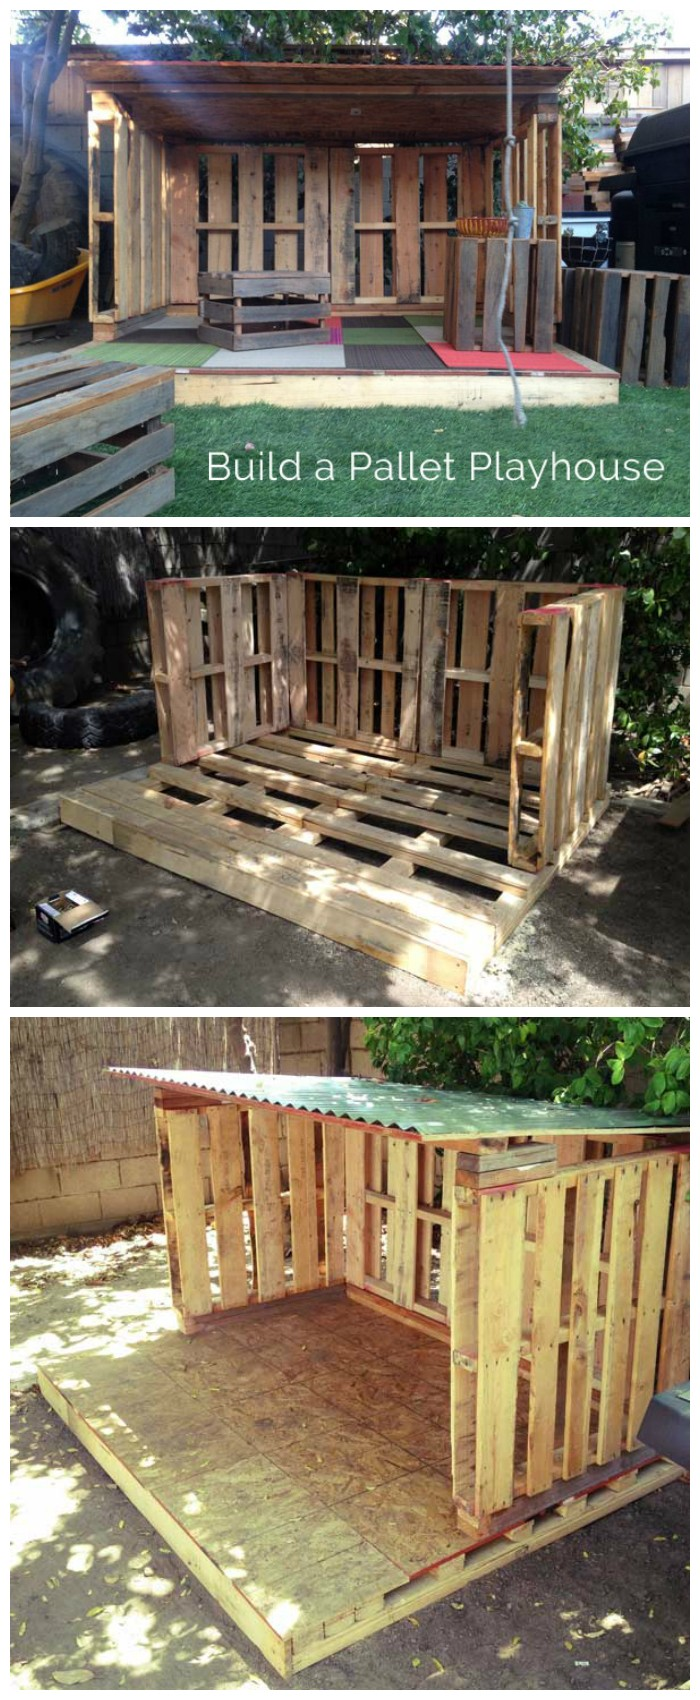 Our Pallet Playhouse DIY Playhouse Ideas For Your Kids